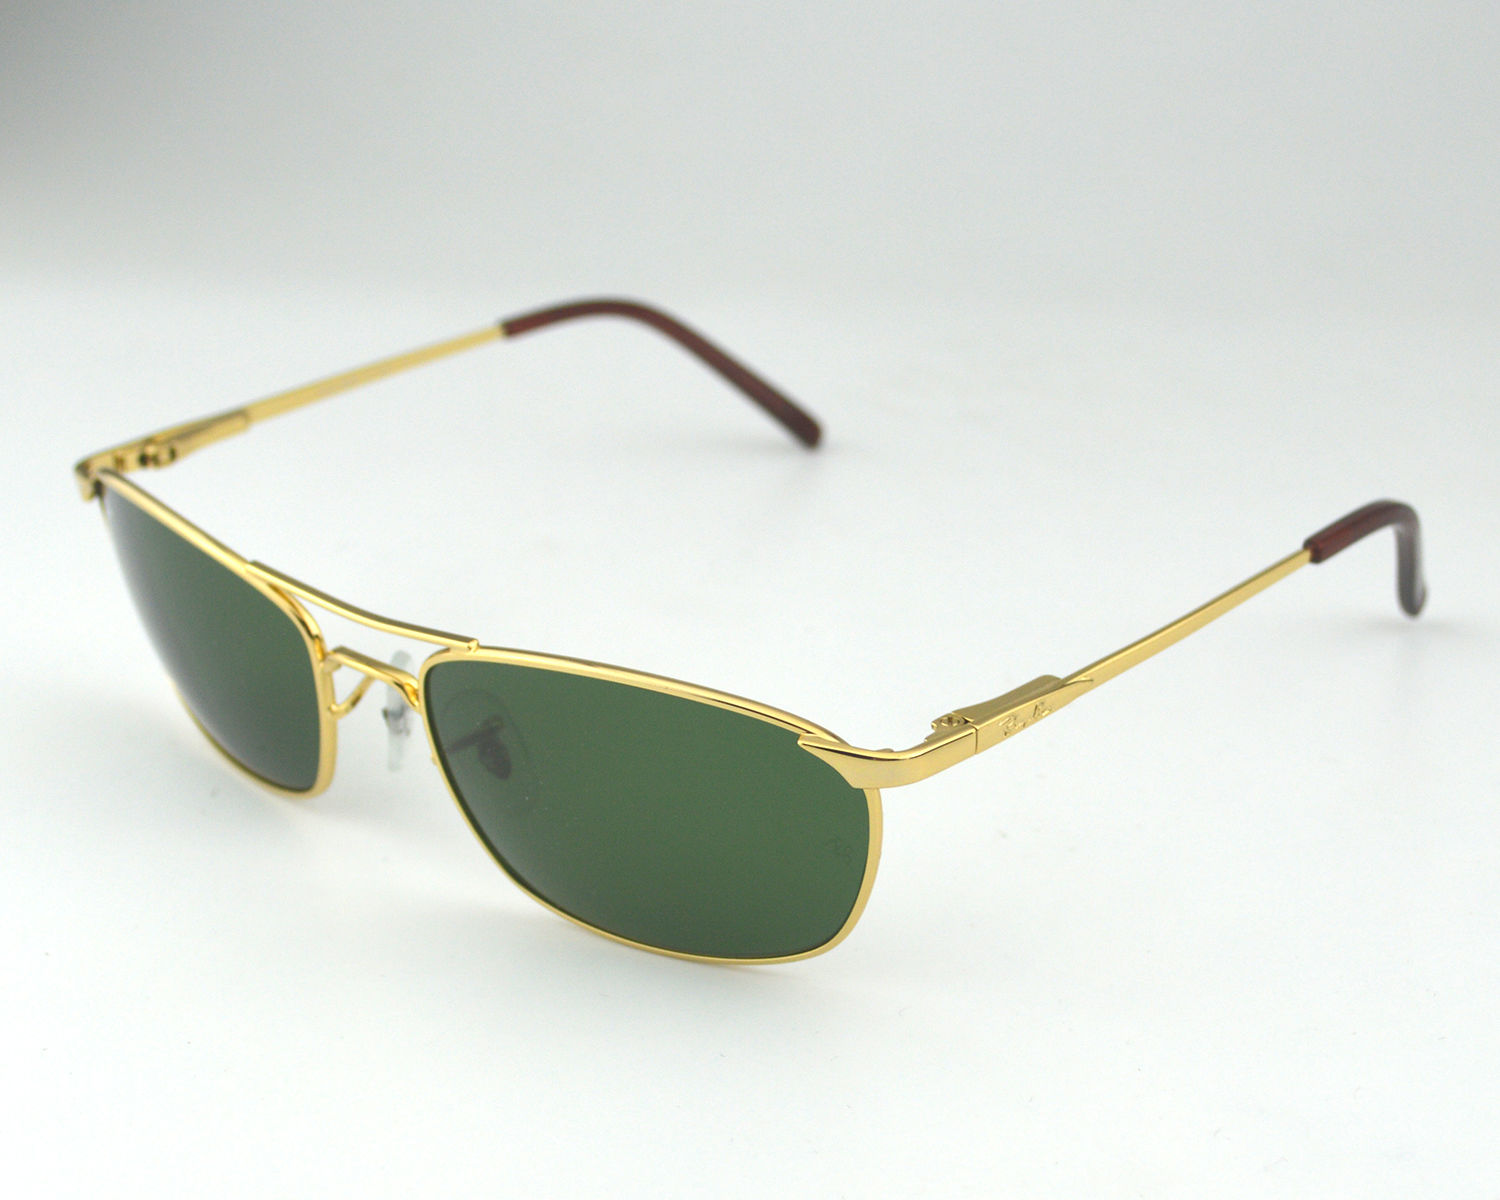 1ca53727b8 Ray-Ban RB3132 001 Gold Metal Frame Green Classic Lens Unisex Sunglasses  56mm